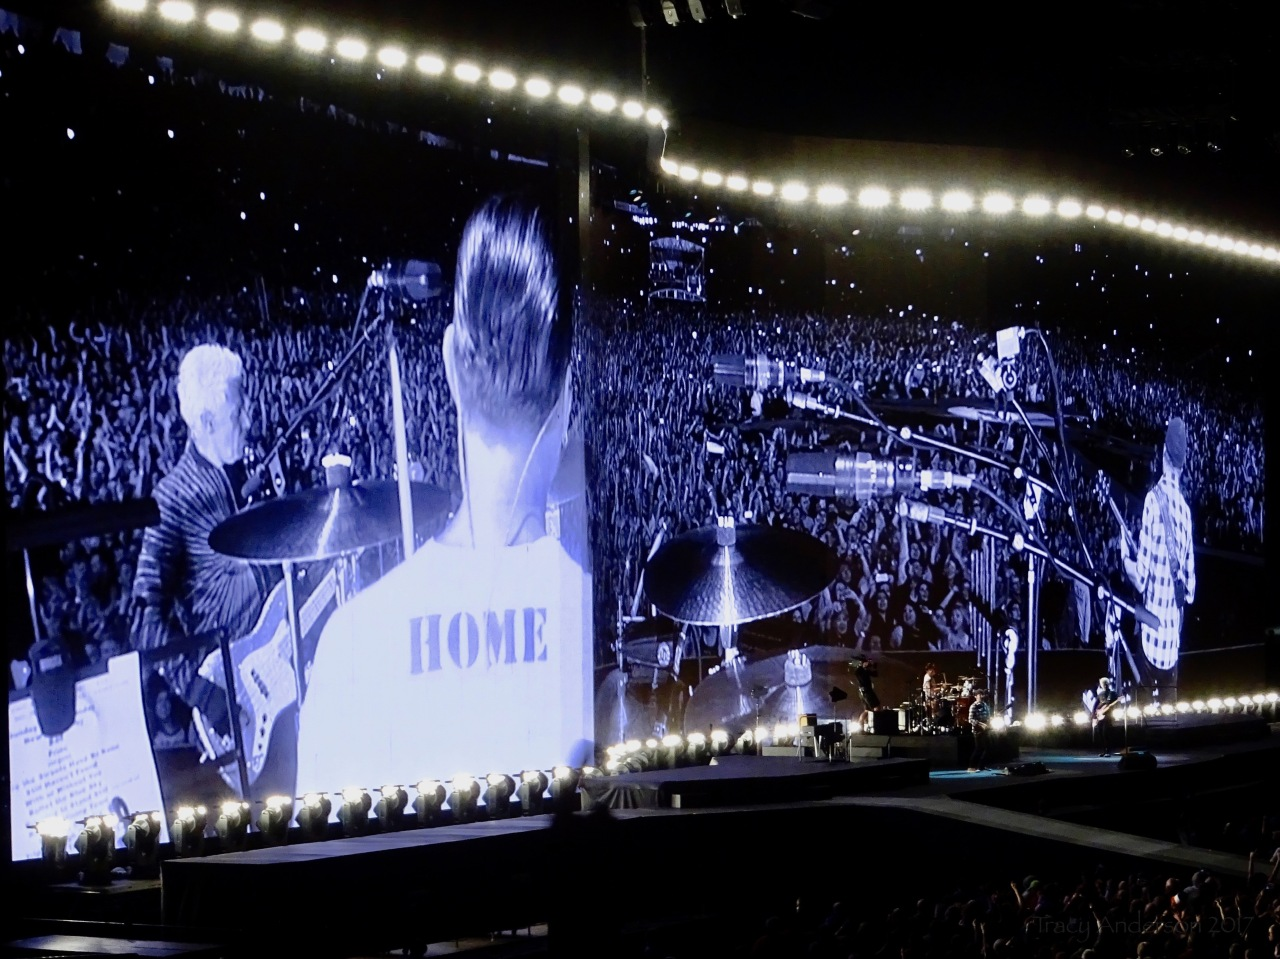 The Church of U2 – Congregating for Dublin shows